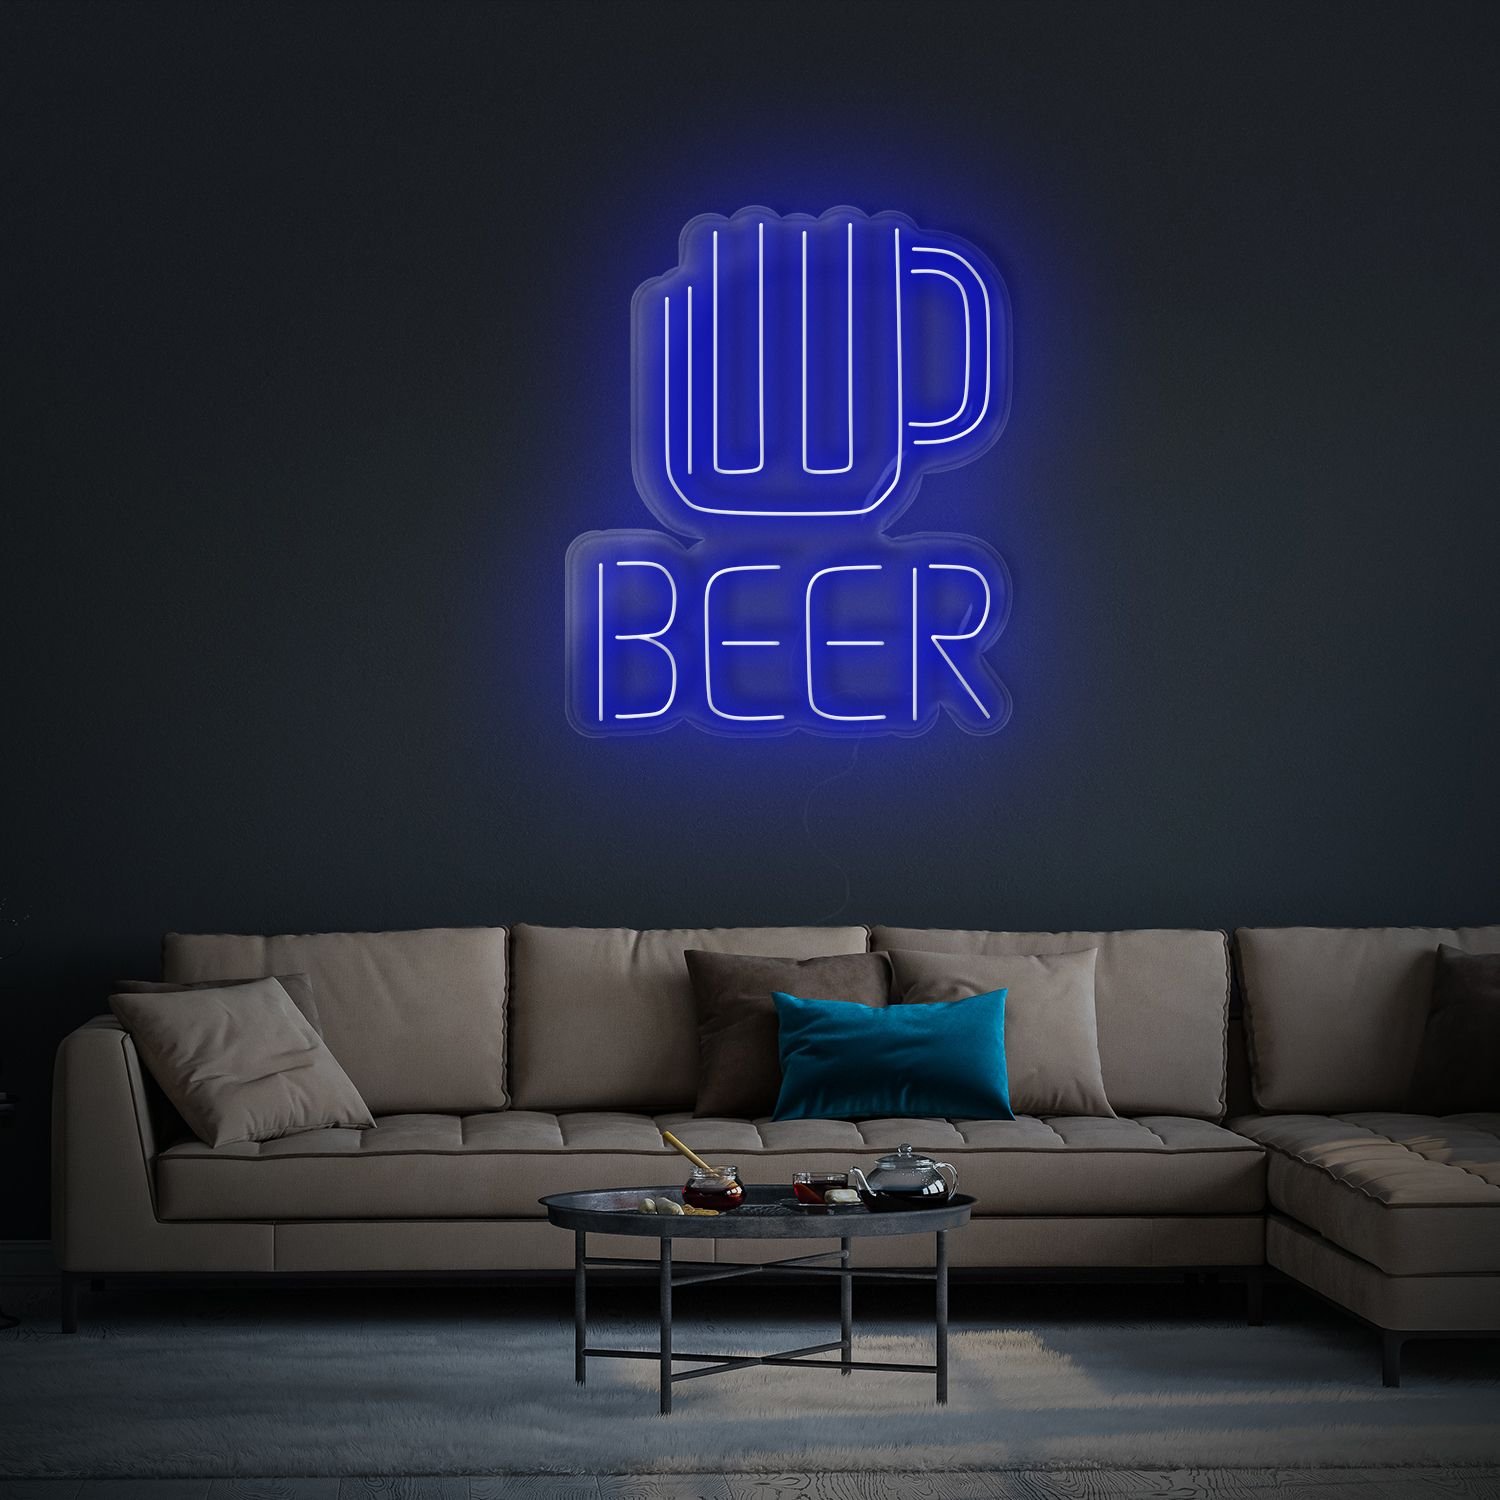 Neon Beer Sign - CreateNeon.com Bar or Pub Neon sign, Home bar sign